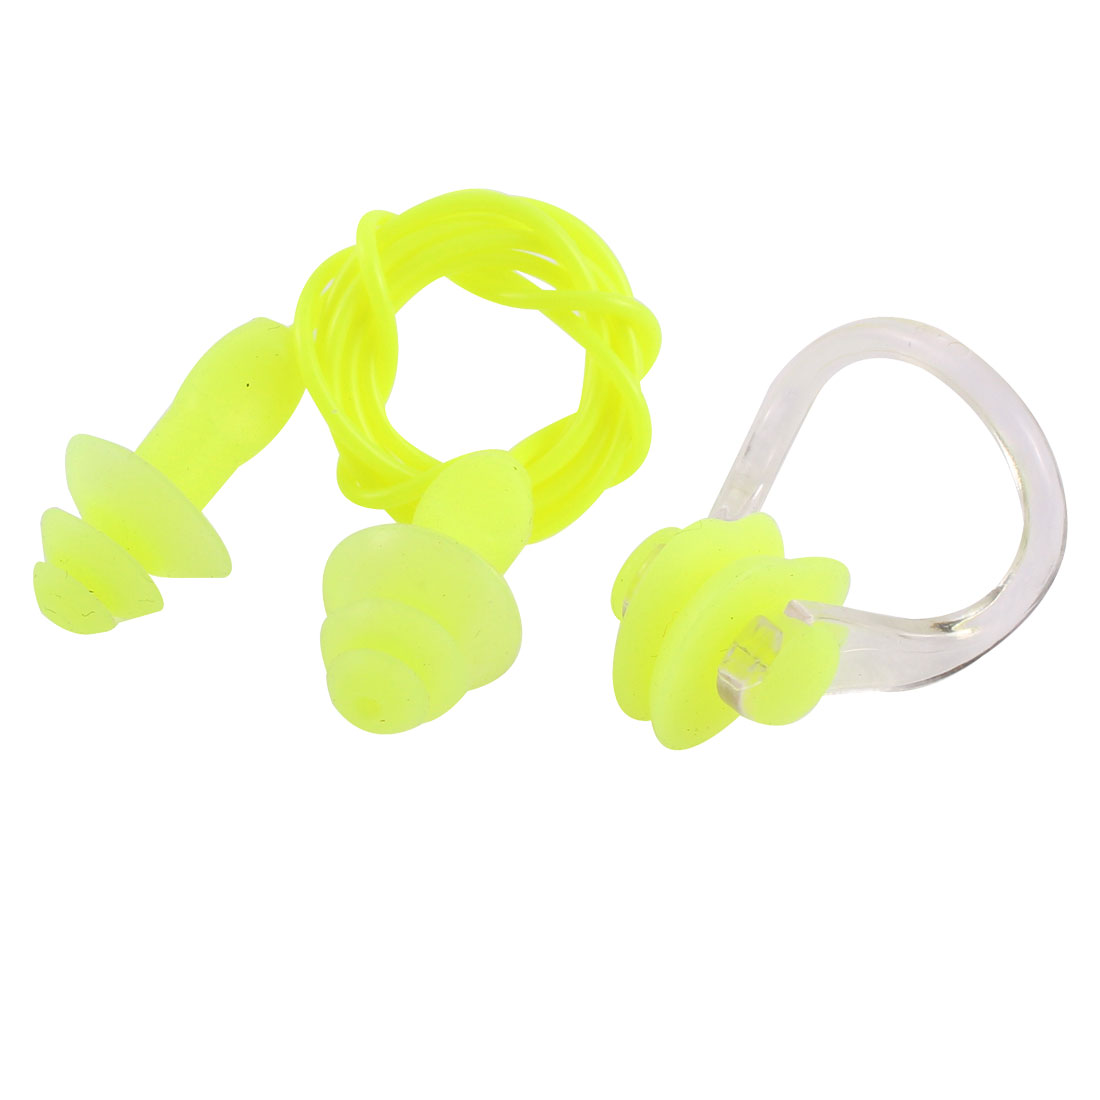 Water Sport Swimming Guard Tool Protector Earplugs Nose Clip Yellow Green Set